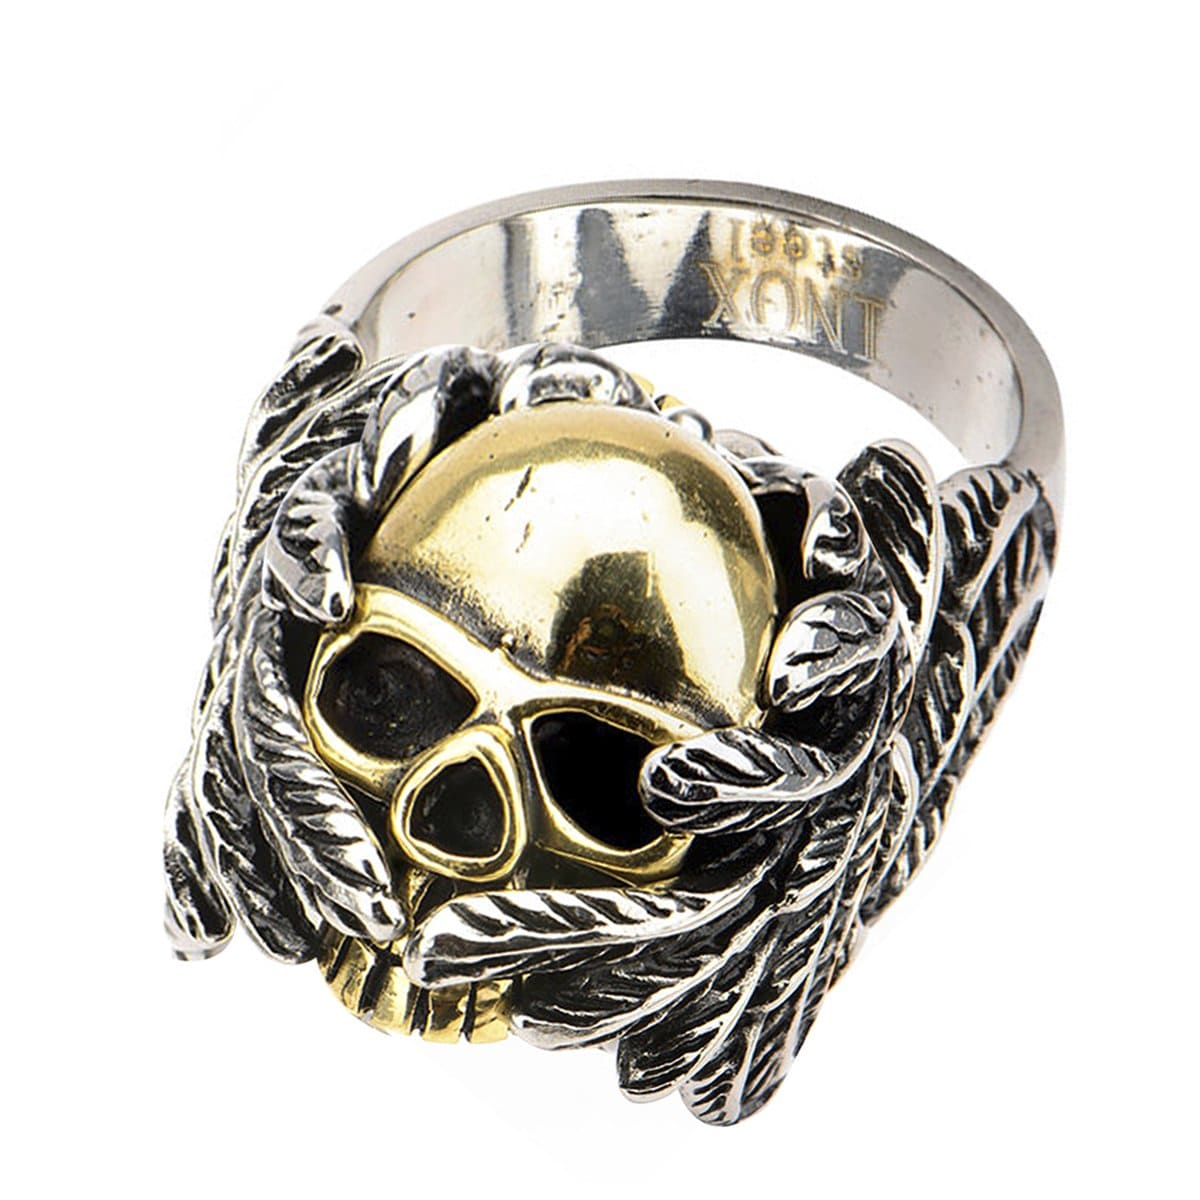 Gold & Darkened Silver Stainless Steel Bundled Skull in Wings Ring - Inox Jewelry India